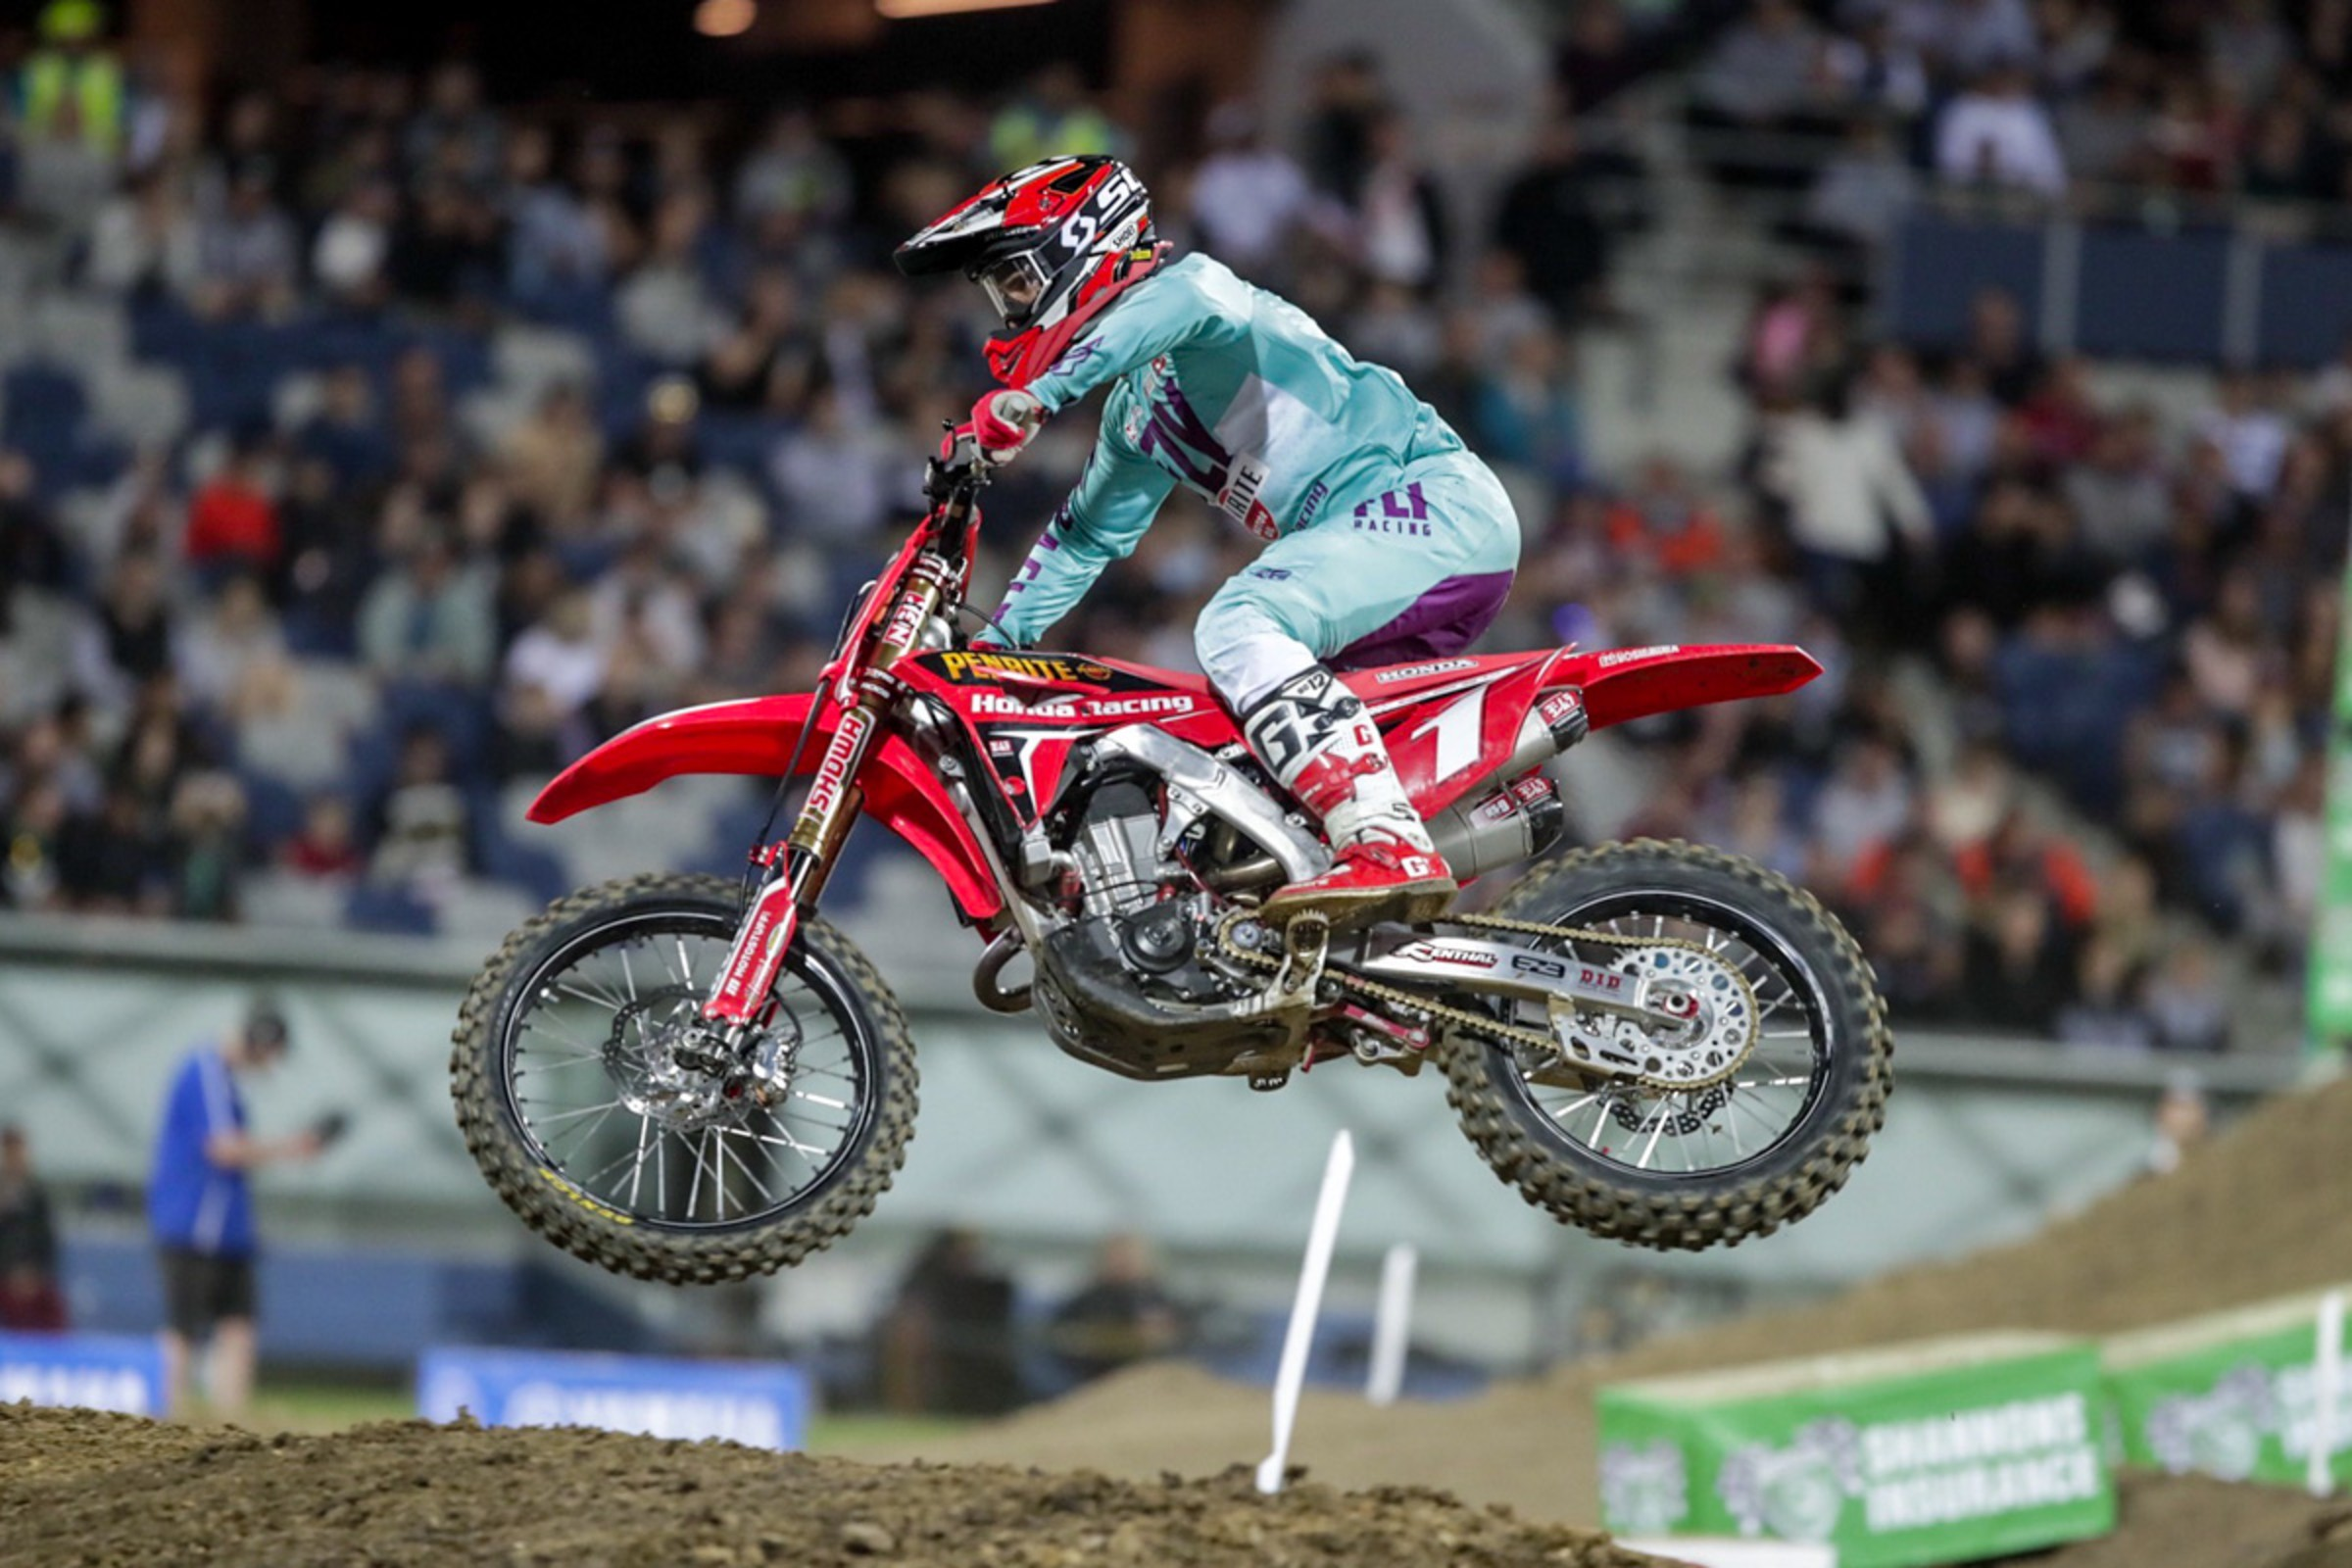 Justin Brayton Wins Third Straight To Open Australian Supercross Championship